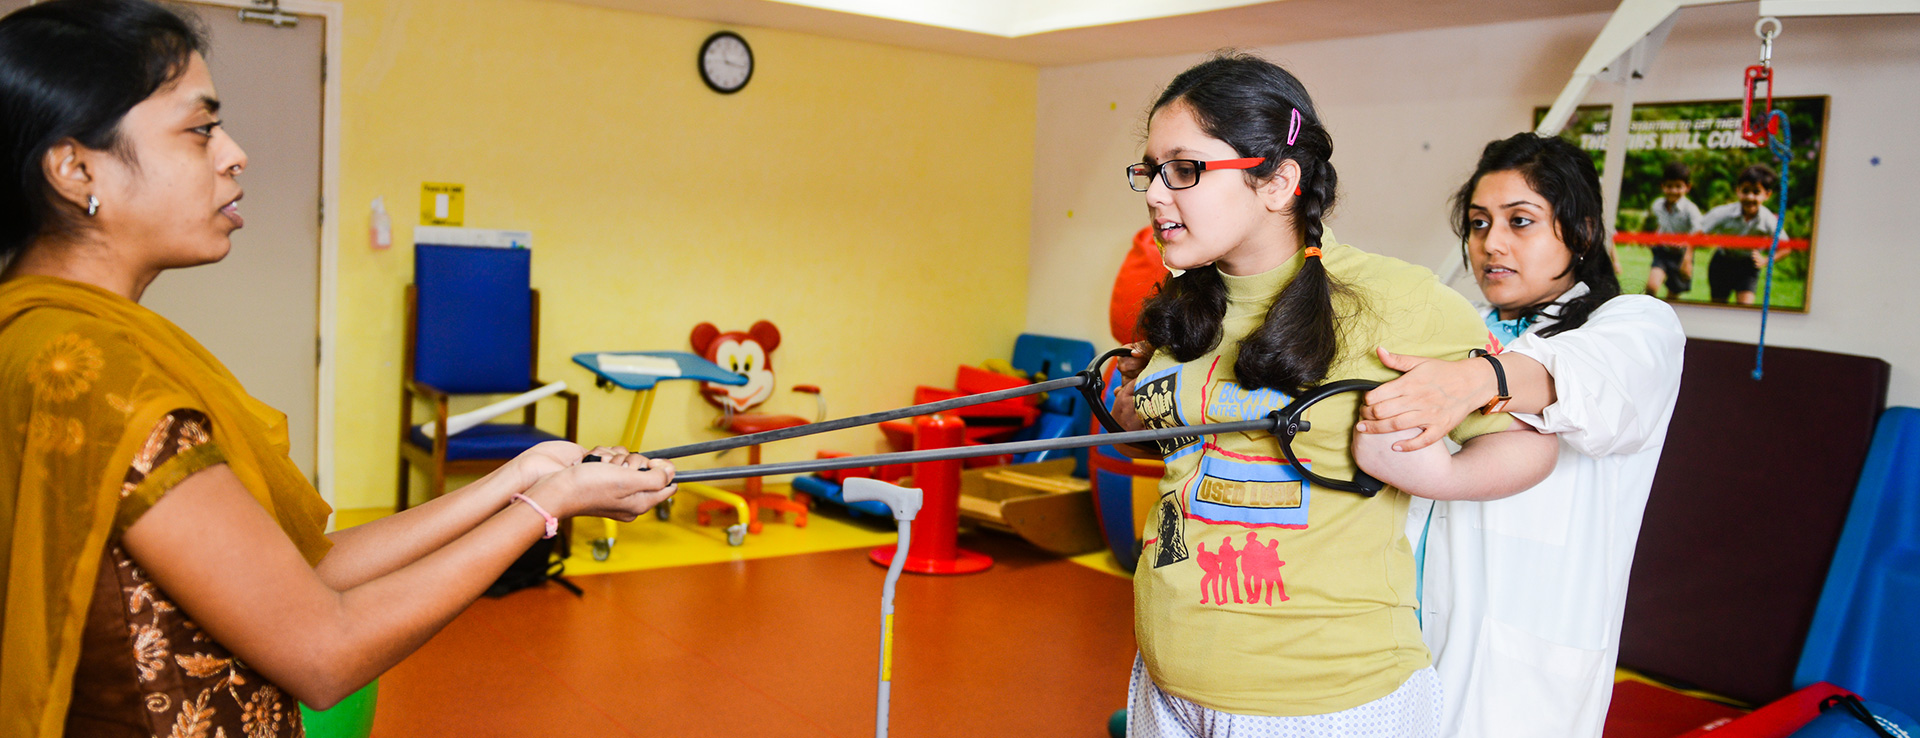 paediatric-rehabilitation-hospital-in-mumbai